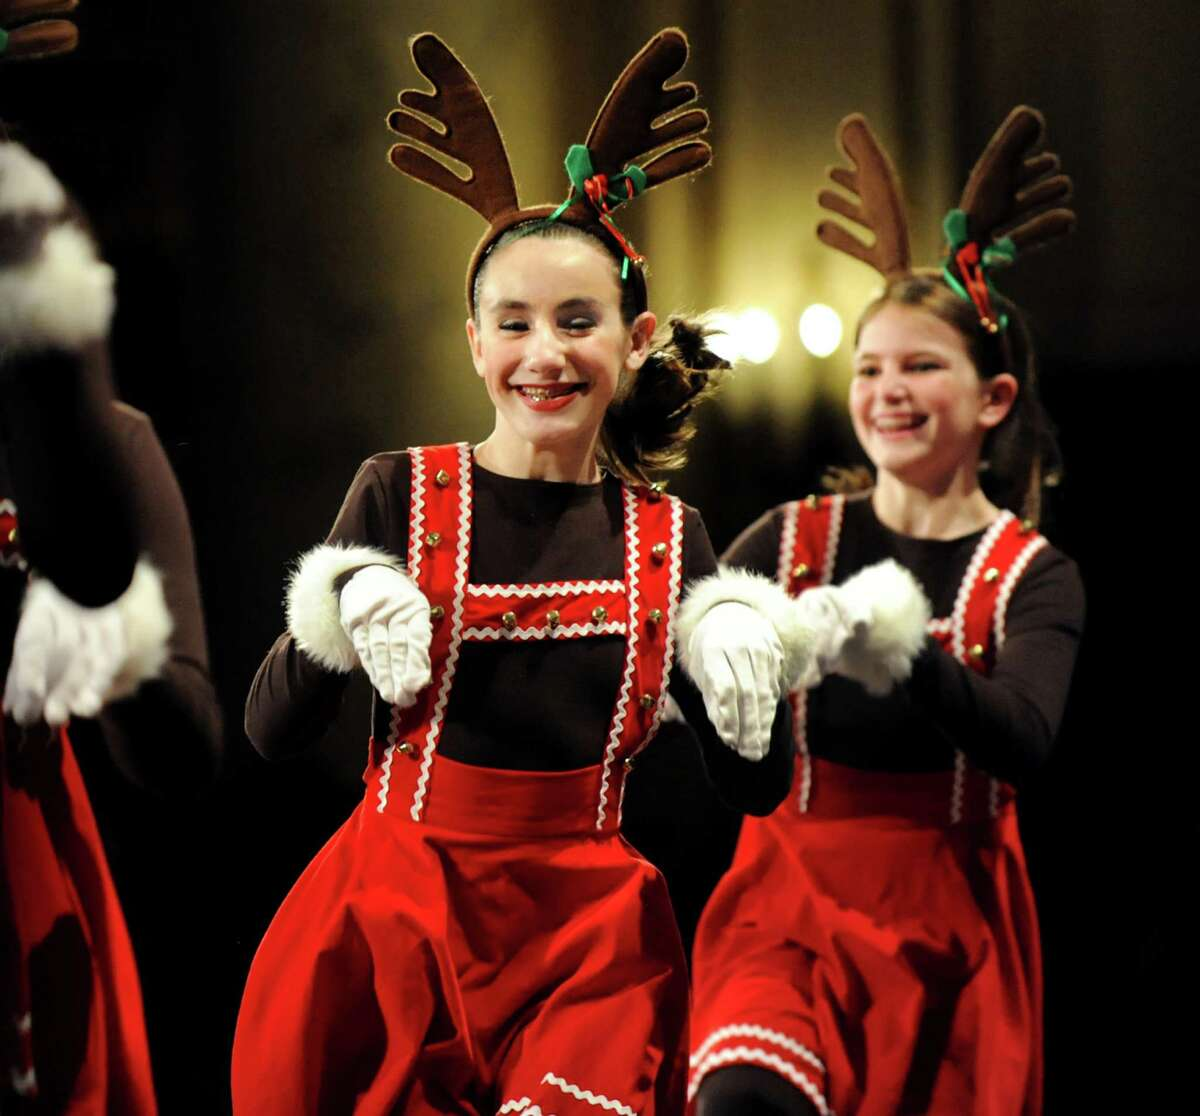 Northeast Ballet dancers perform during the Melodies of Christmas on Thursday, Dec. 12, 2013, at Proctors Theater in Schenectady, N.Y. The show featured the Empire State Youth Orchestra, the Empire State Youth Chorale. (Cindy Schultz / Times Union)